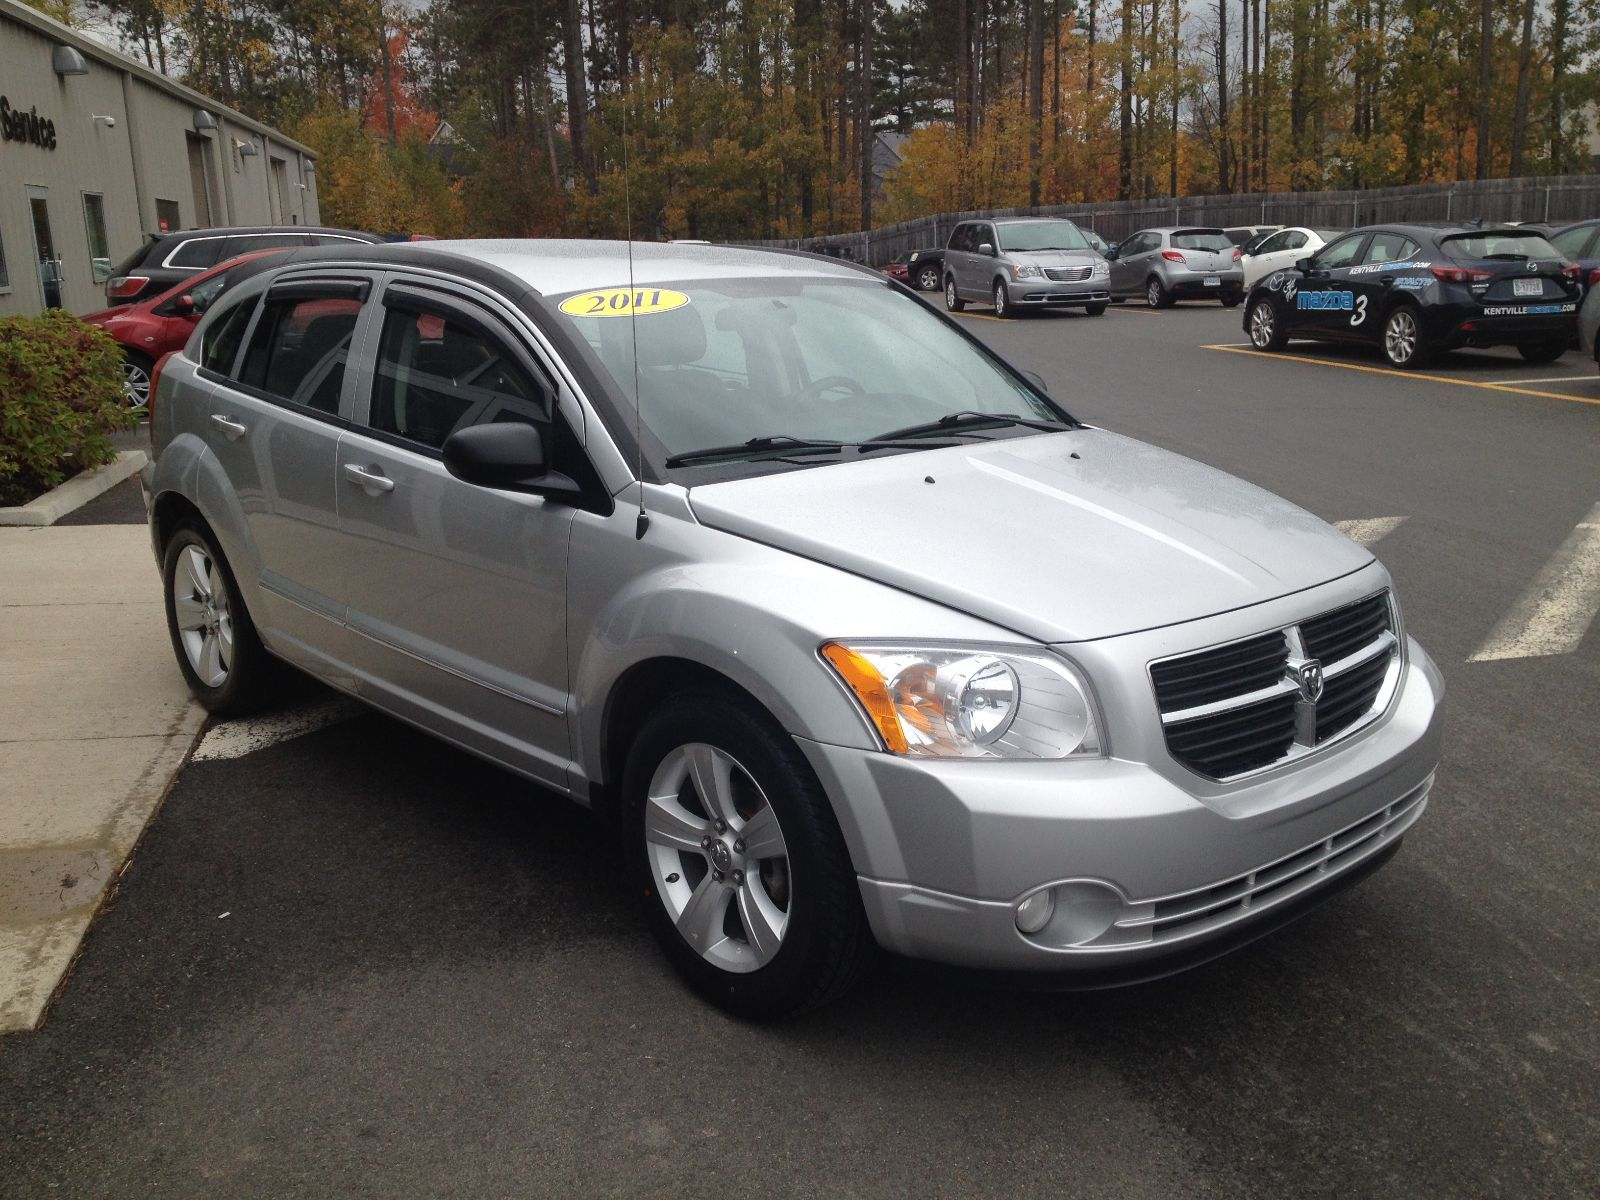 used 2011 dodge caliber sxt in new germany used inventory lake view auto in new germany. Black Bedroom Furniture Sets. Home Design Ideas